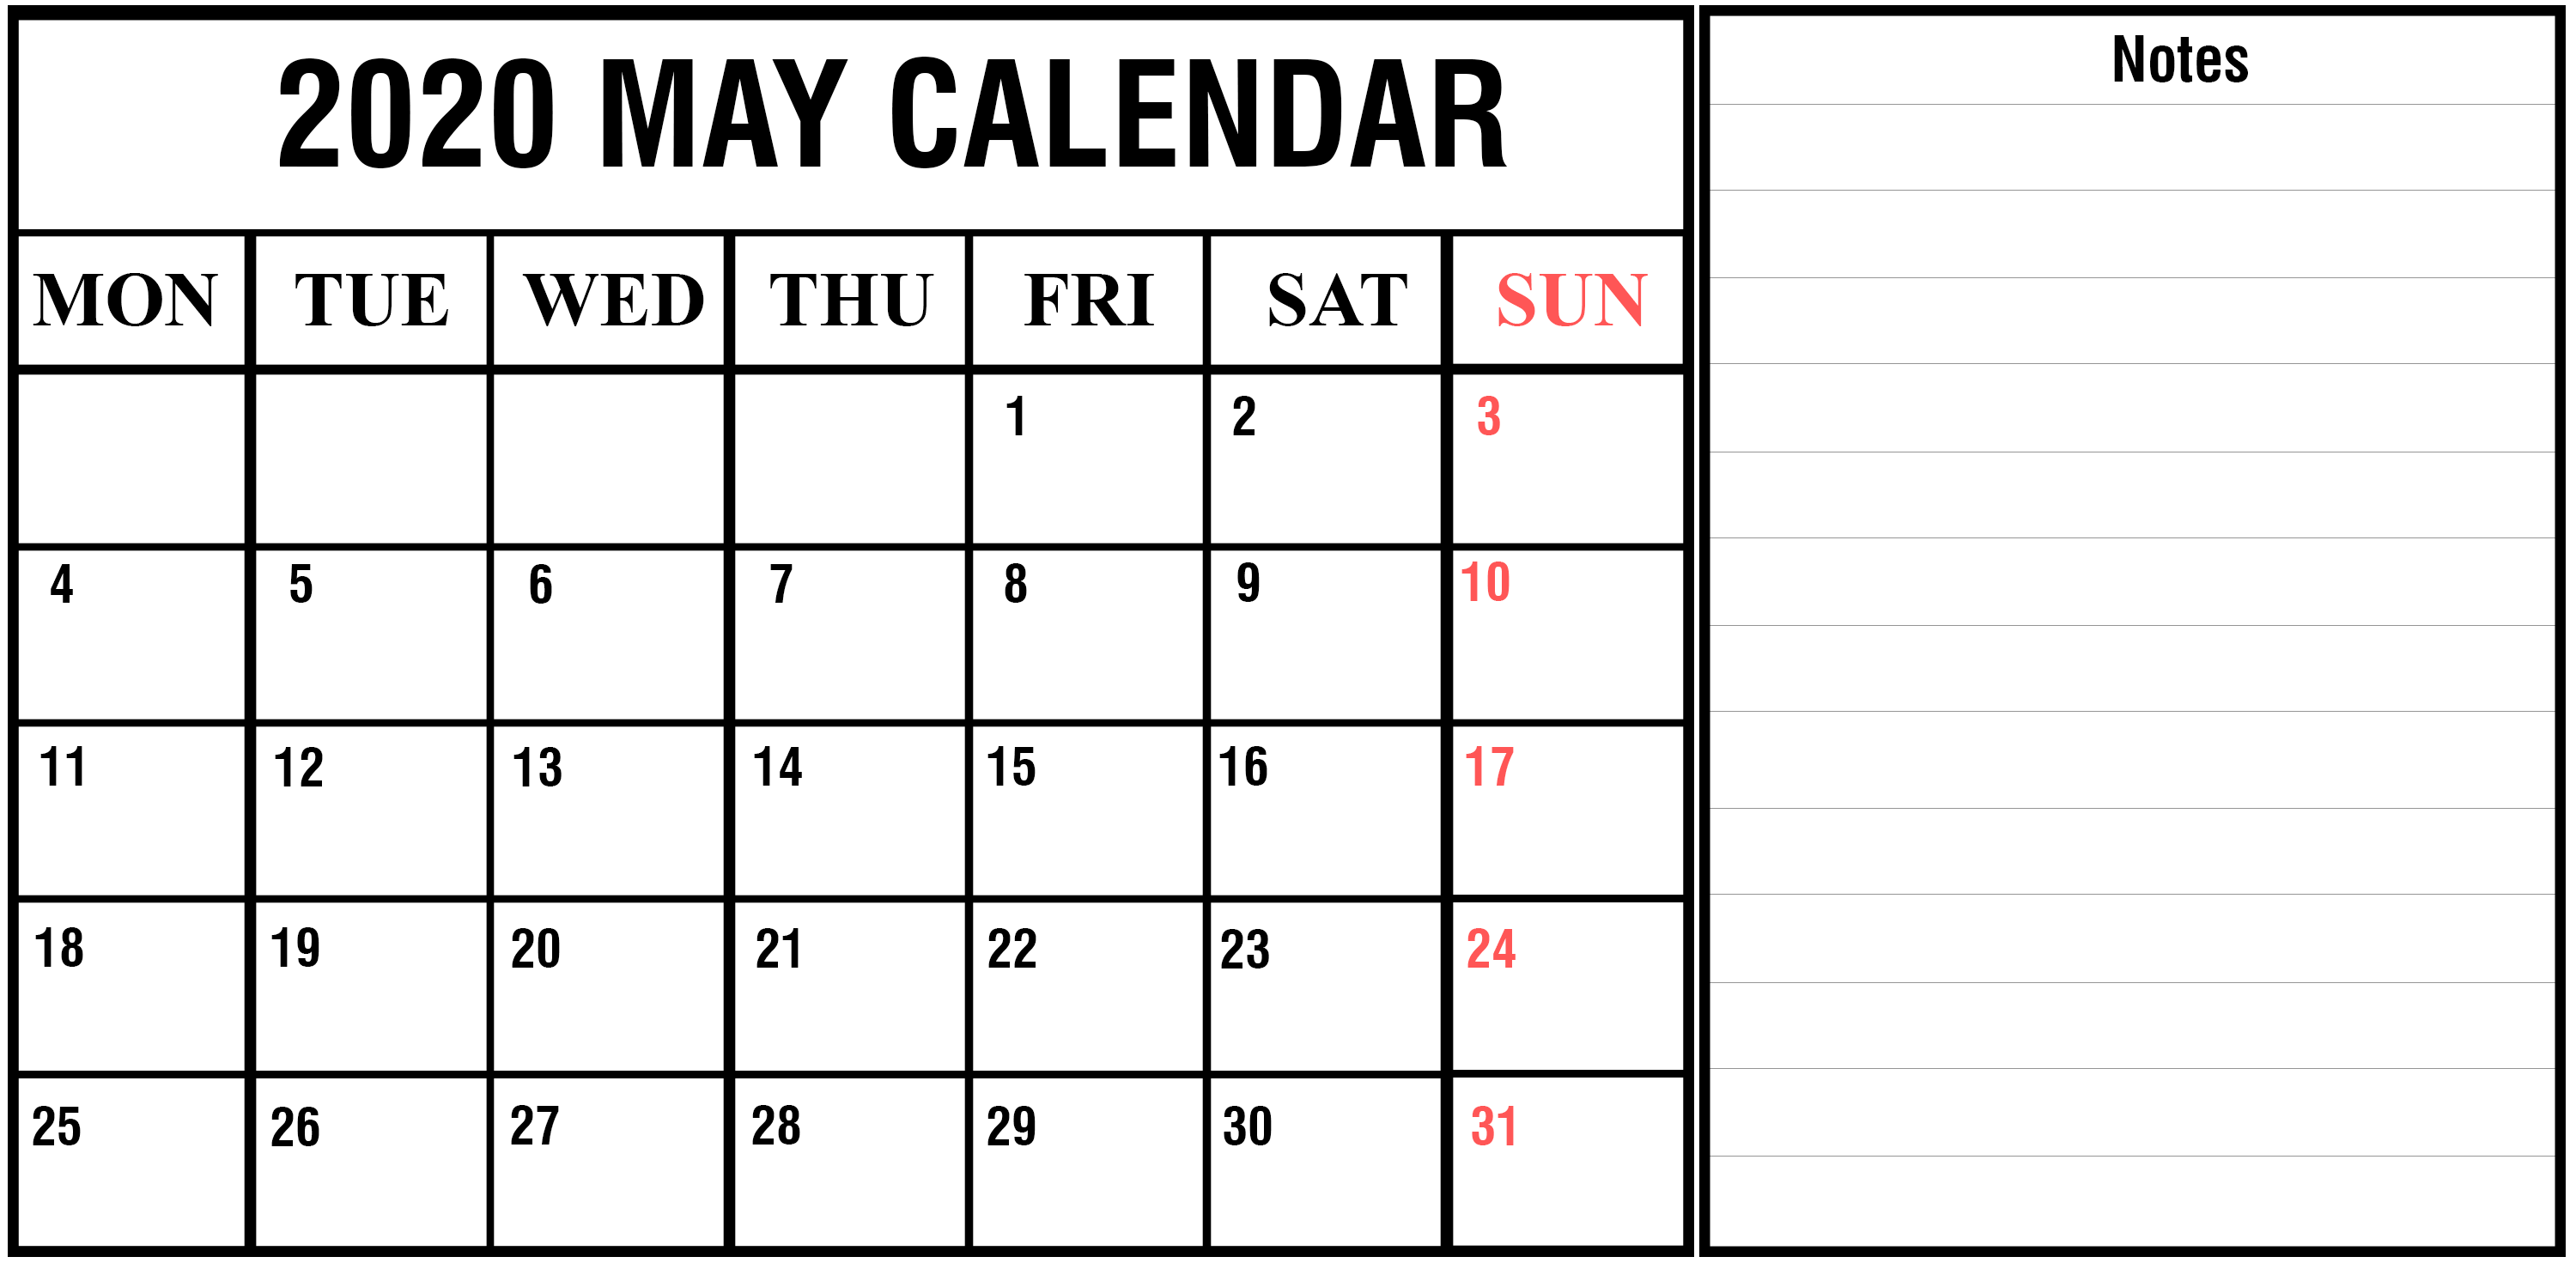 May 2020 Desk Calendar with Notes